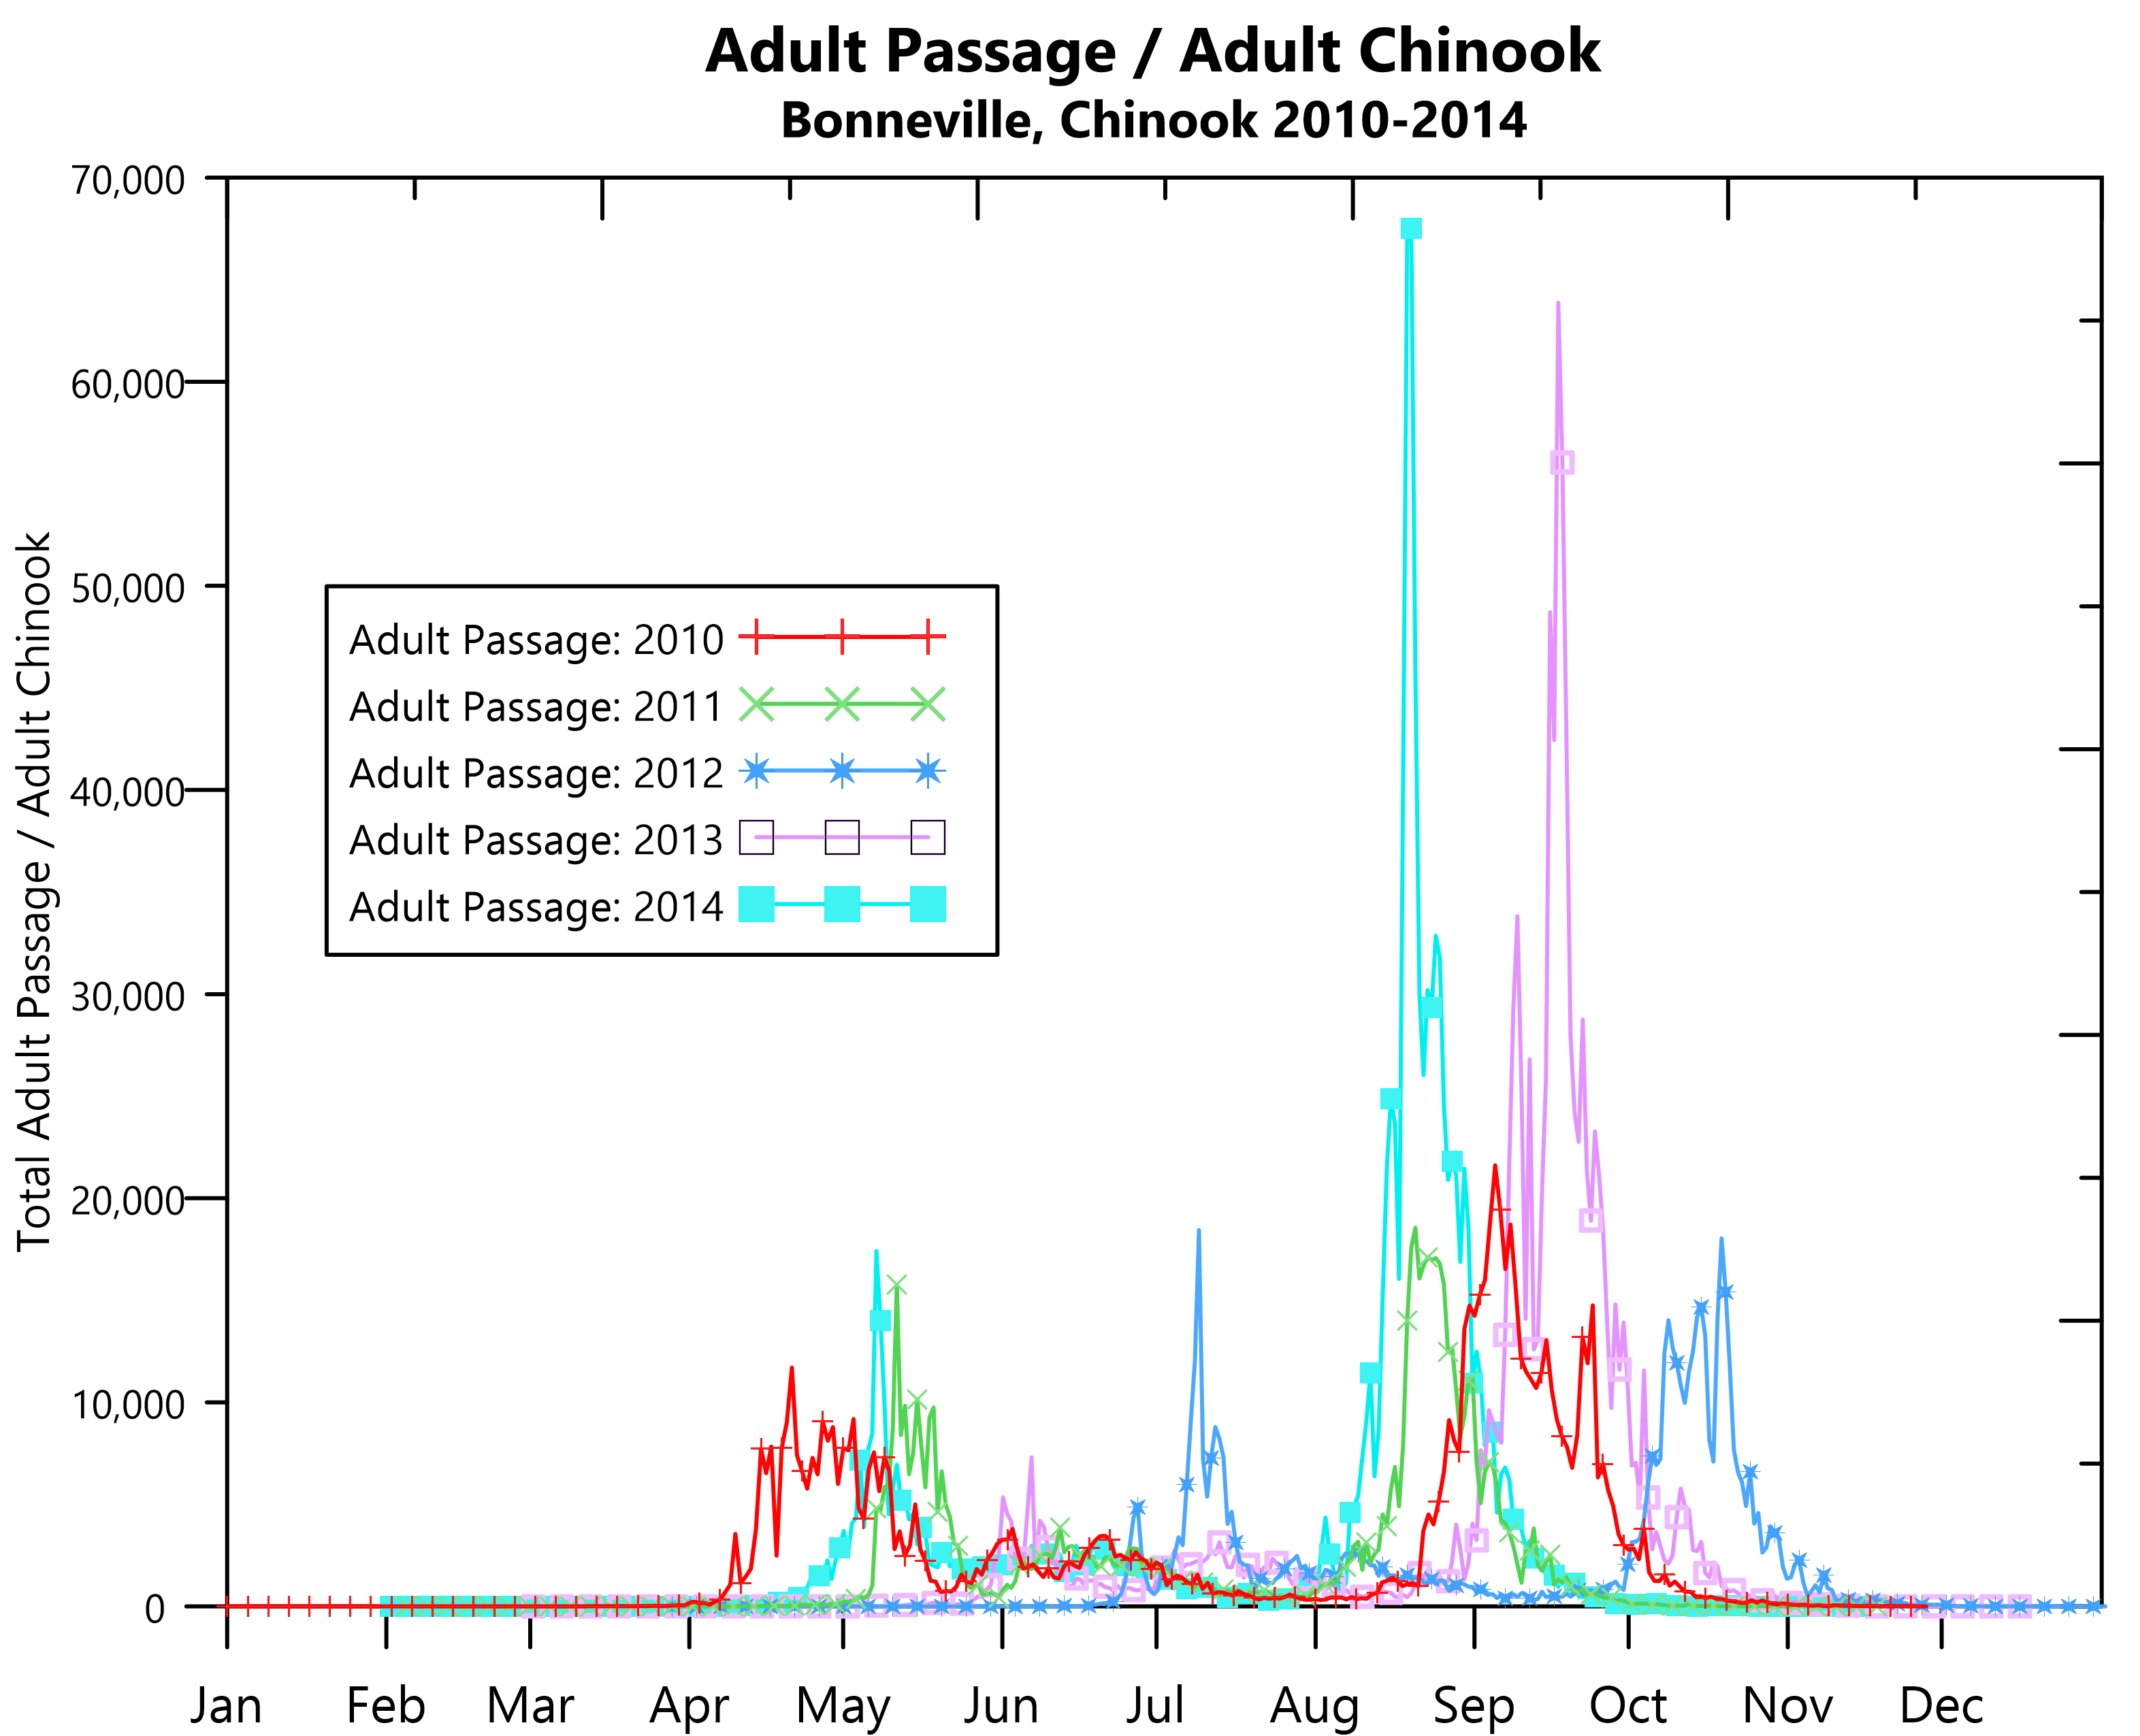 Grapher 2D & 3D graping, plotting & analysis software: 2D line plot - Chinook Salmon passage over time